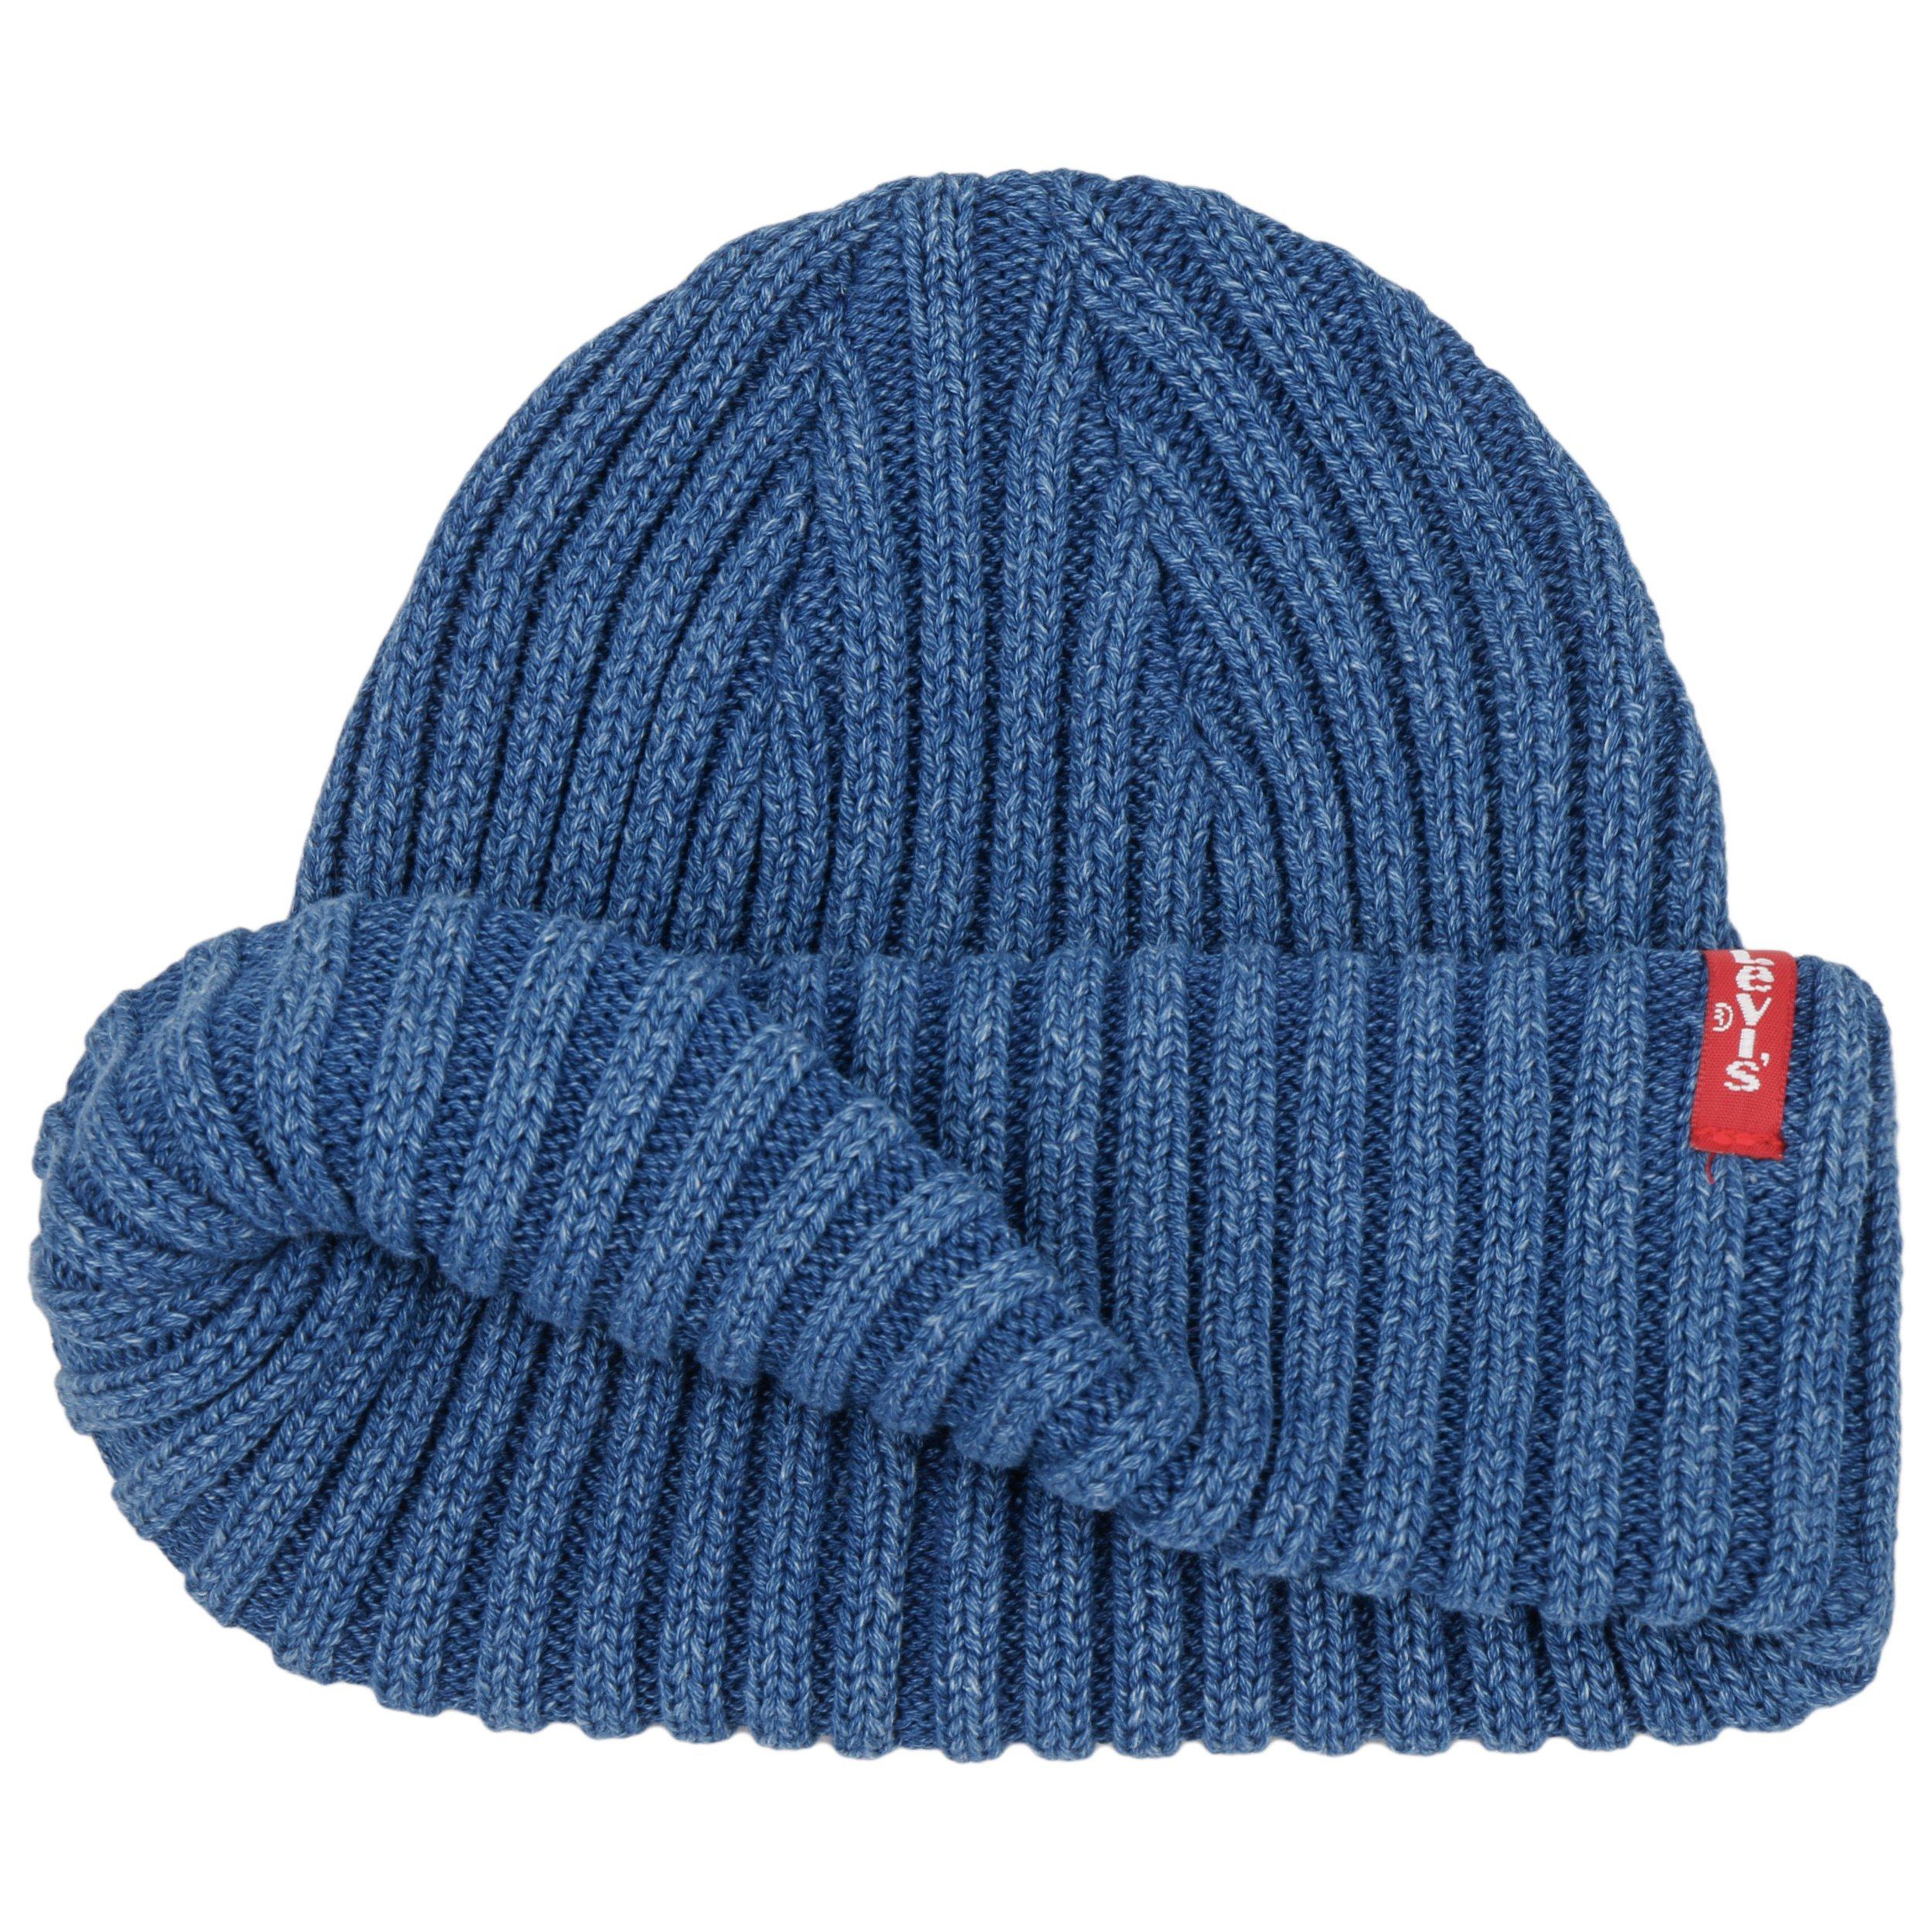 8f26ec6750b Ribbed Indigo Beanie by Levi´s - blue 1 ...